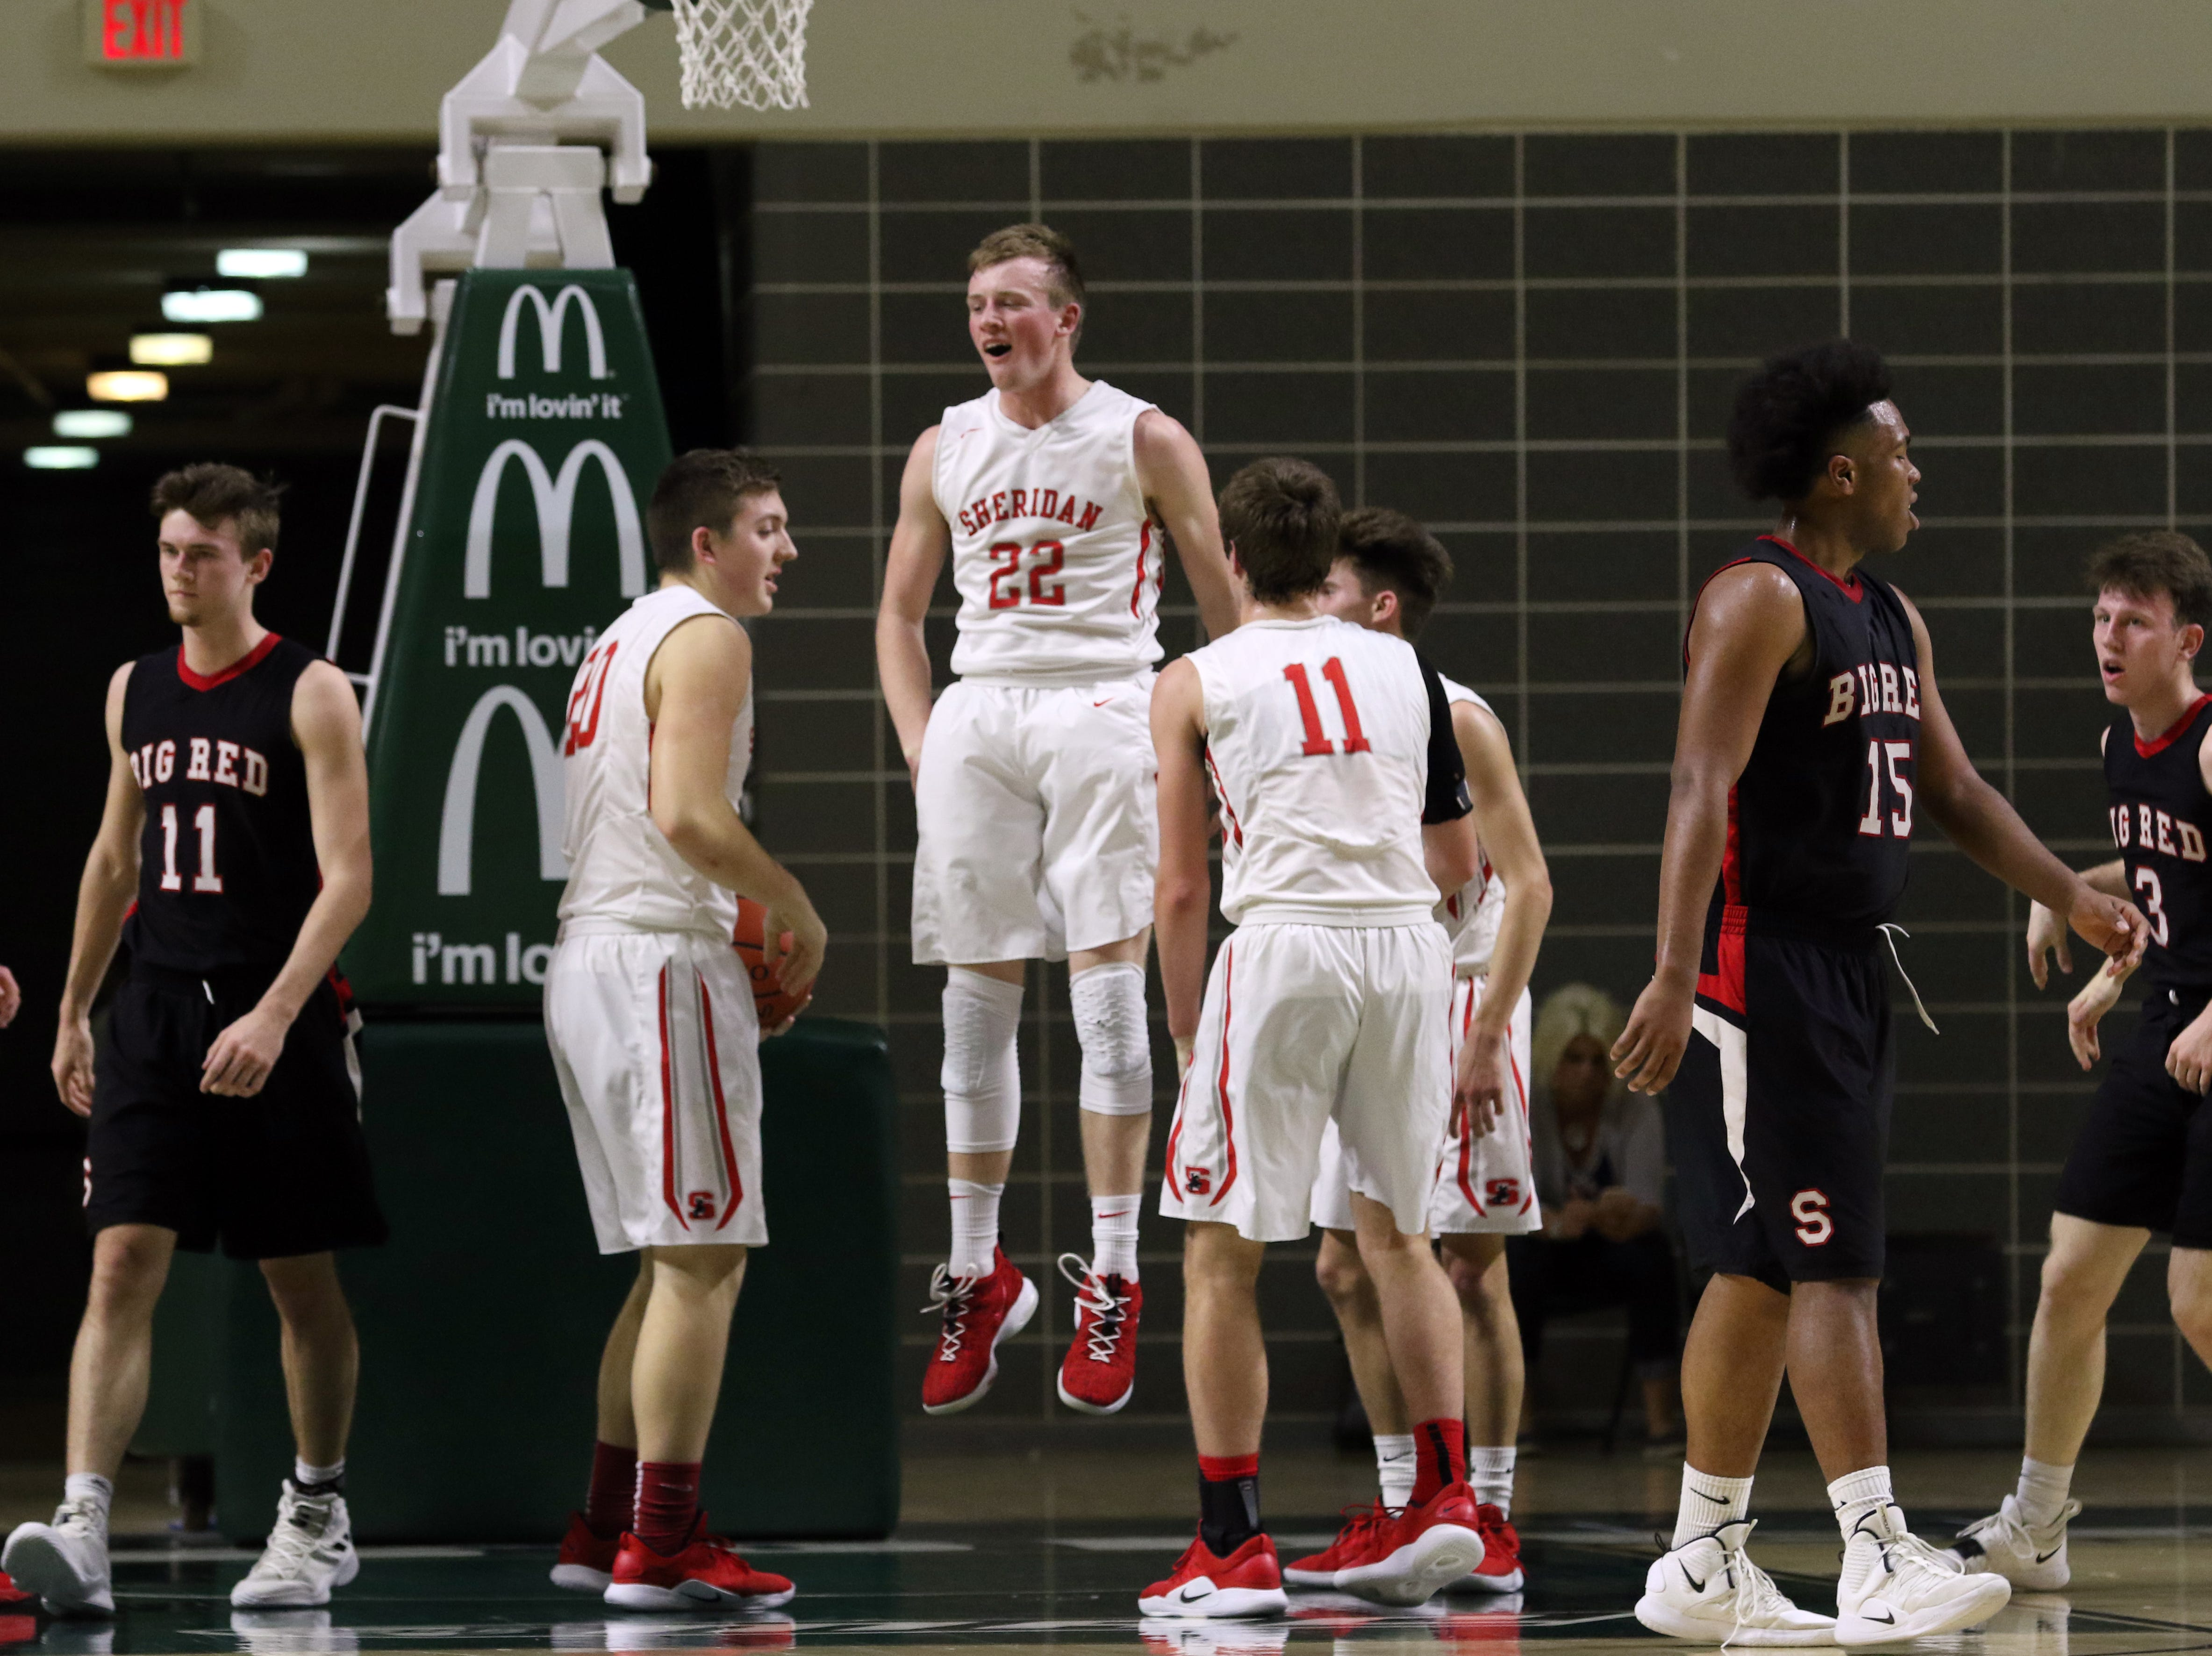 Sheridan's Landen Russell hops to his feet after drawing a charge against Steubenville in the Division II regional semifinals Wednesday in Athens.